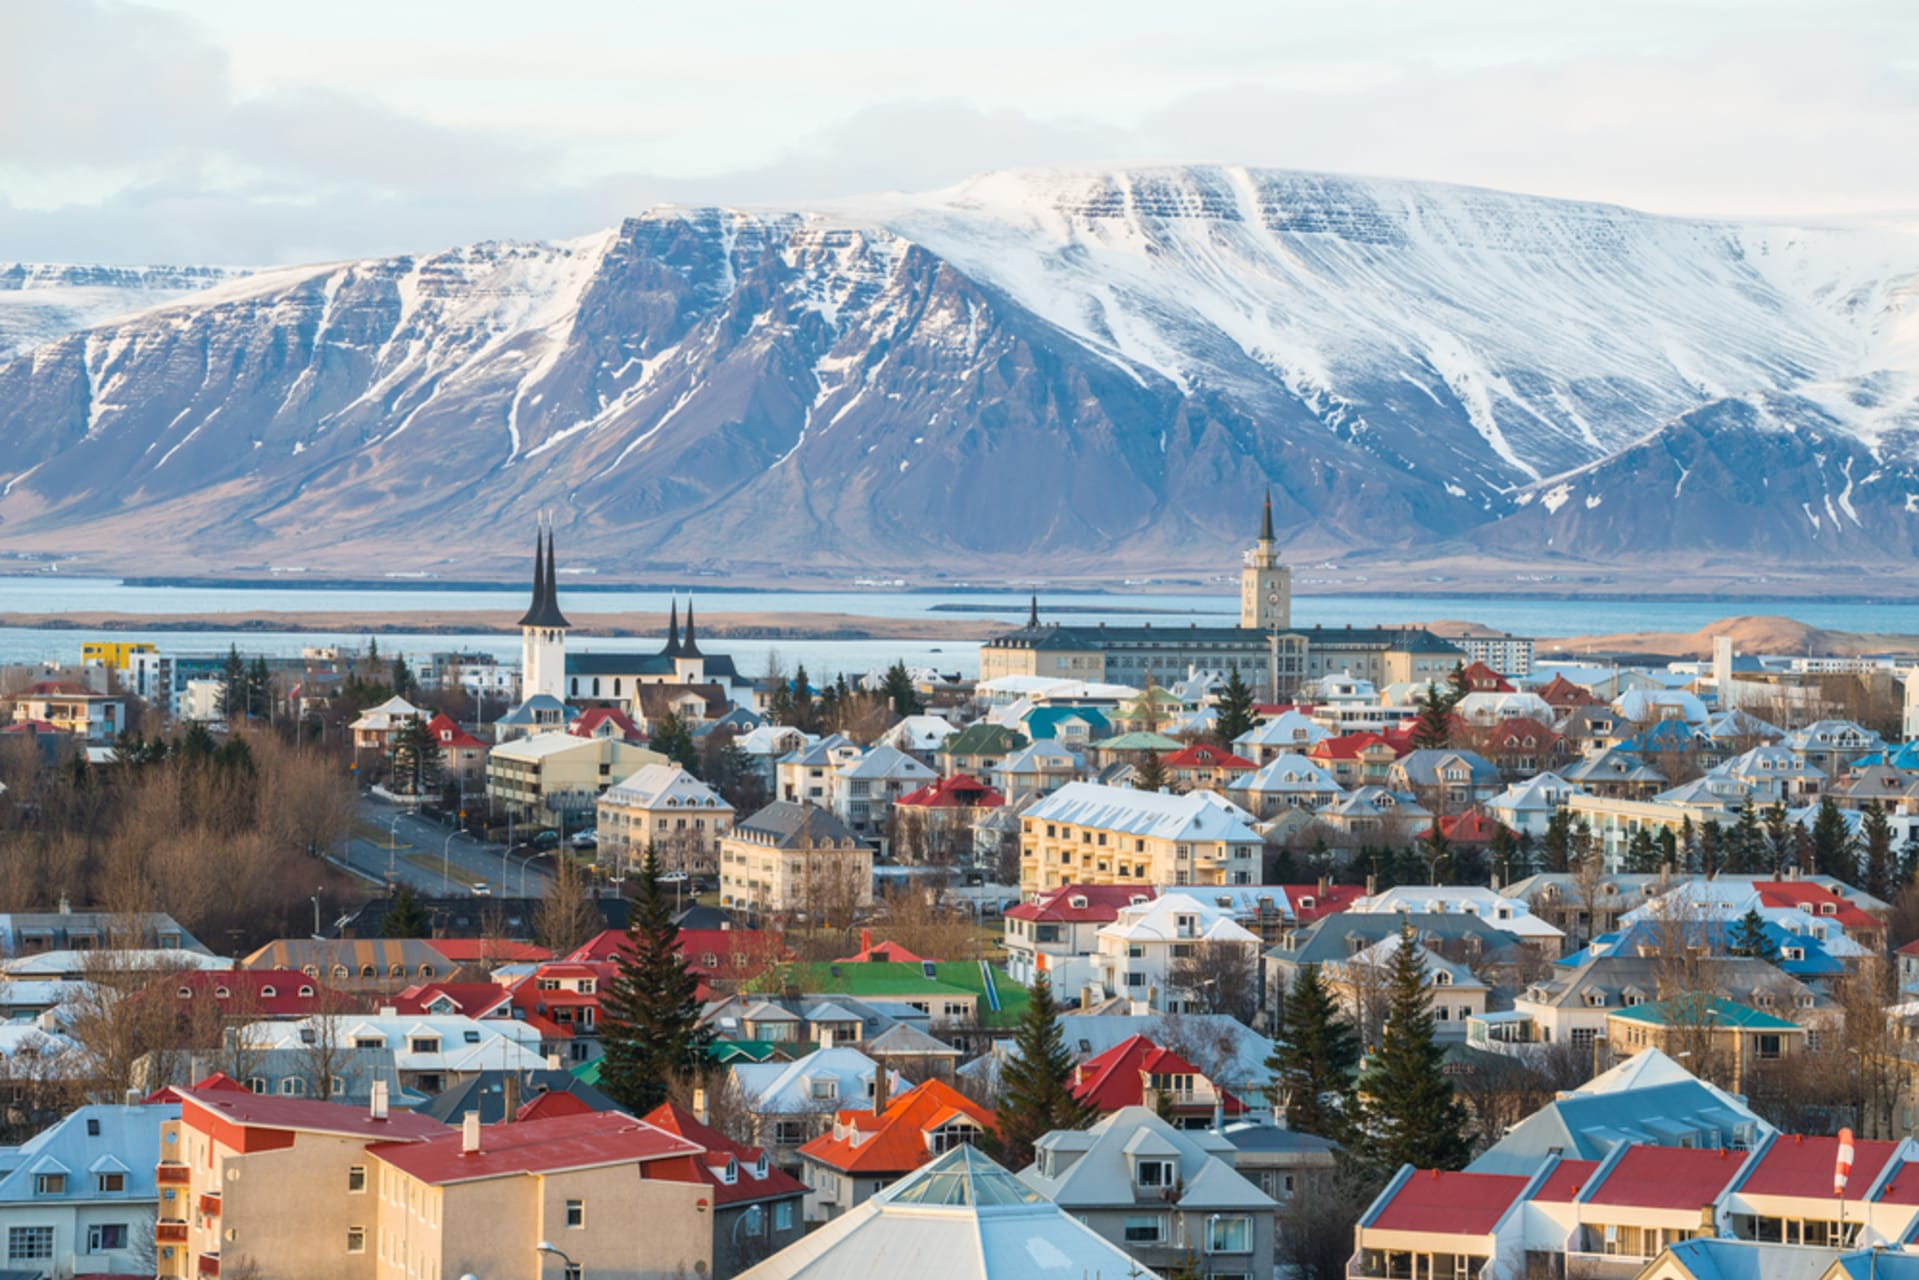 Reykjavik - Old town walk - Past and Present